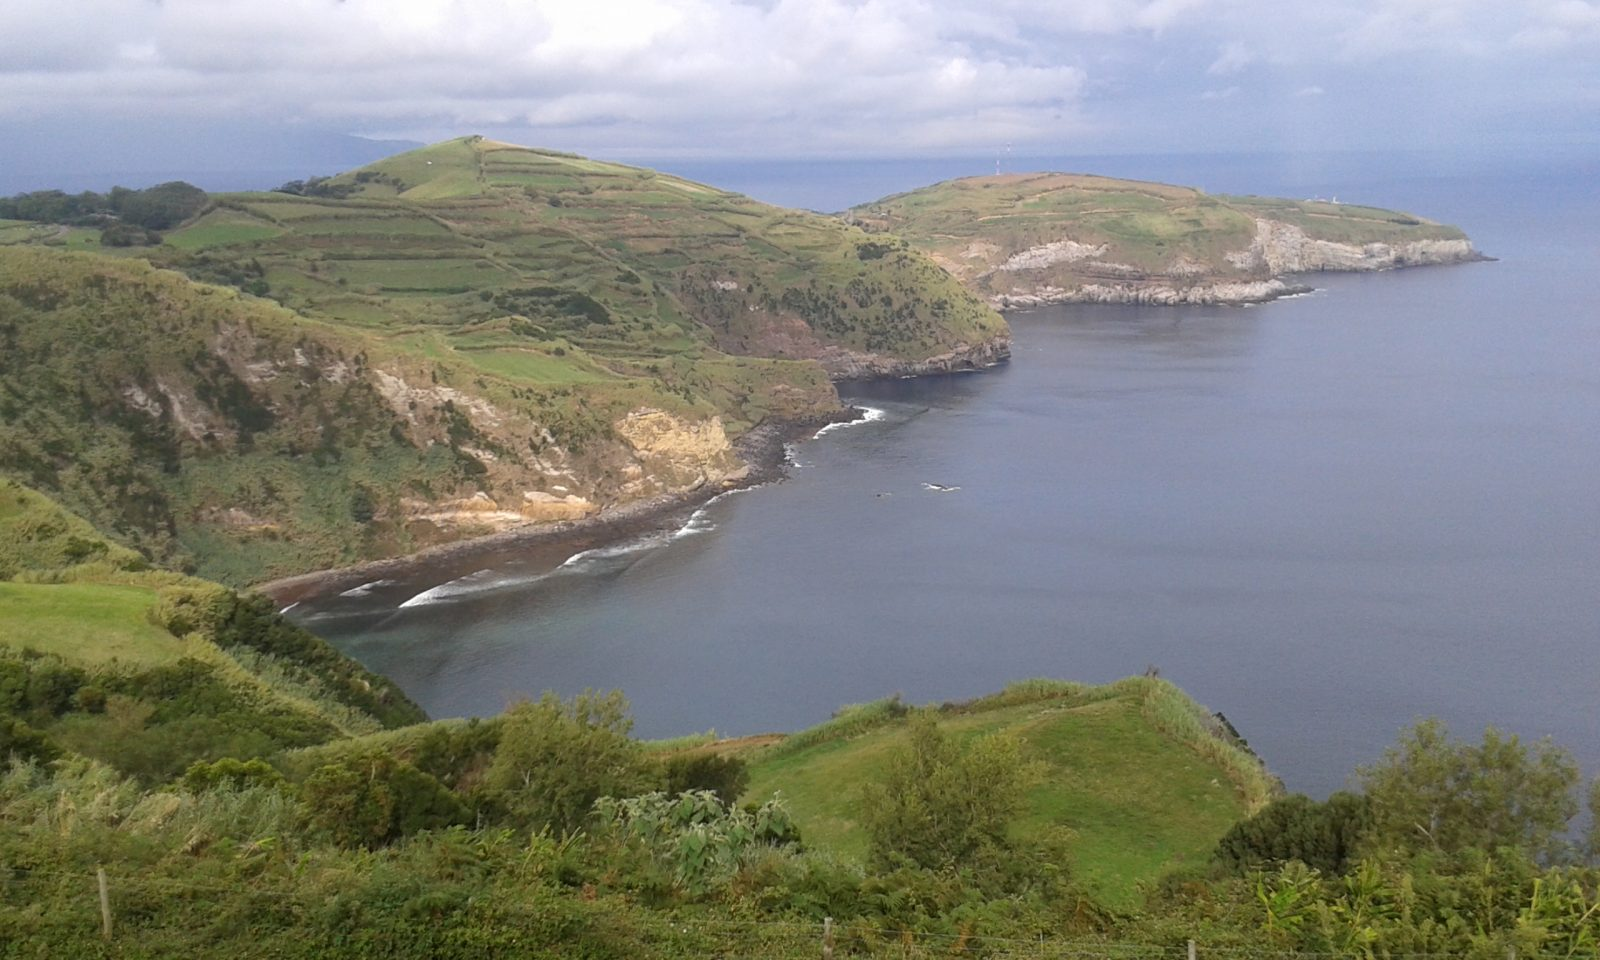 viewpoints sao miguel